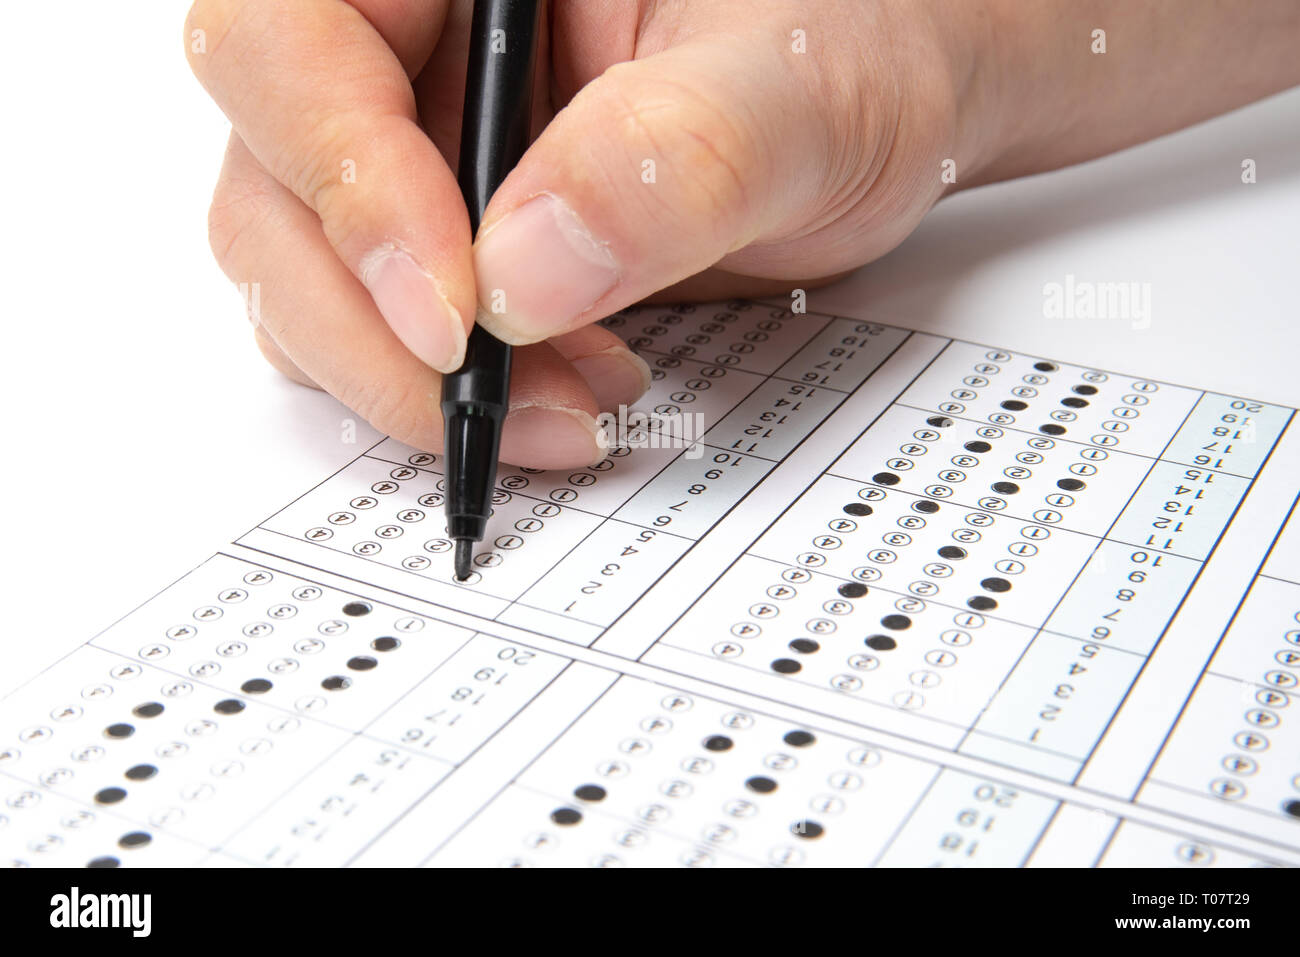 Man is filling OMR sheet handing with pen. - Stock Image